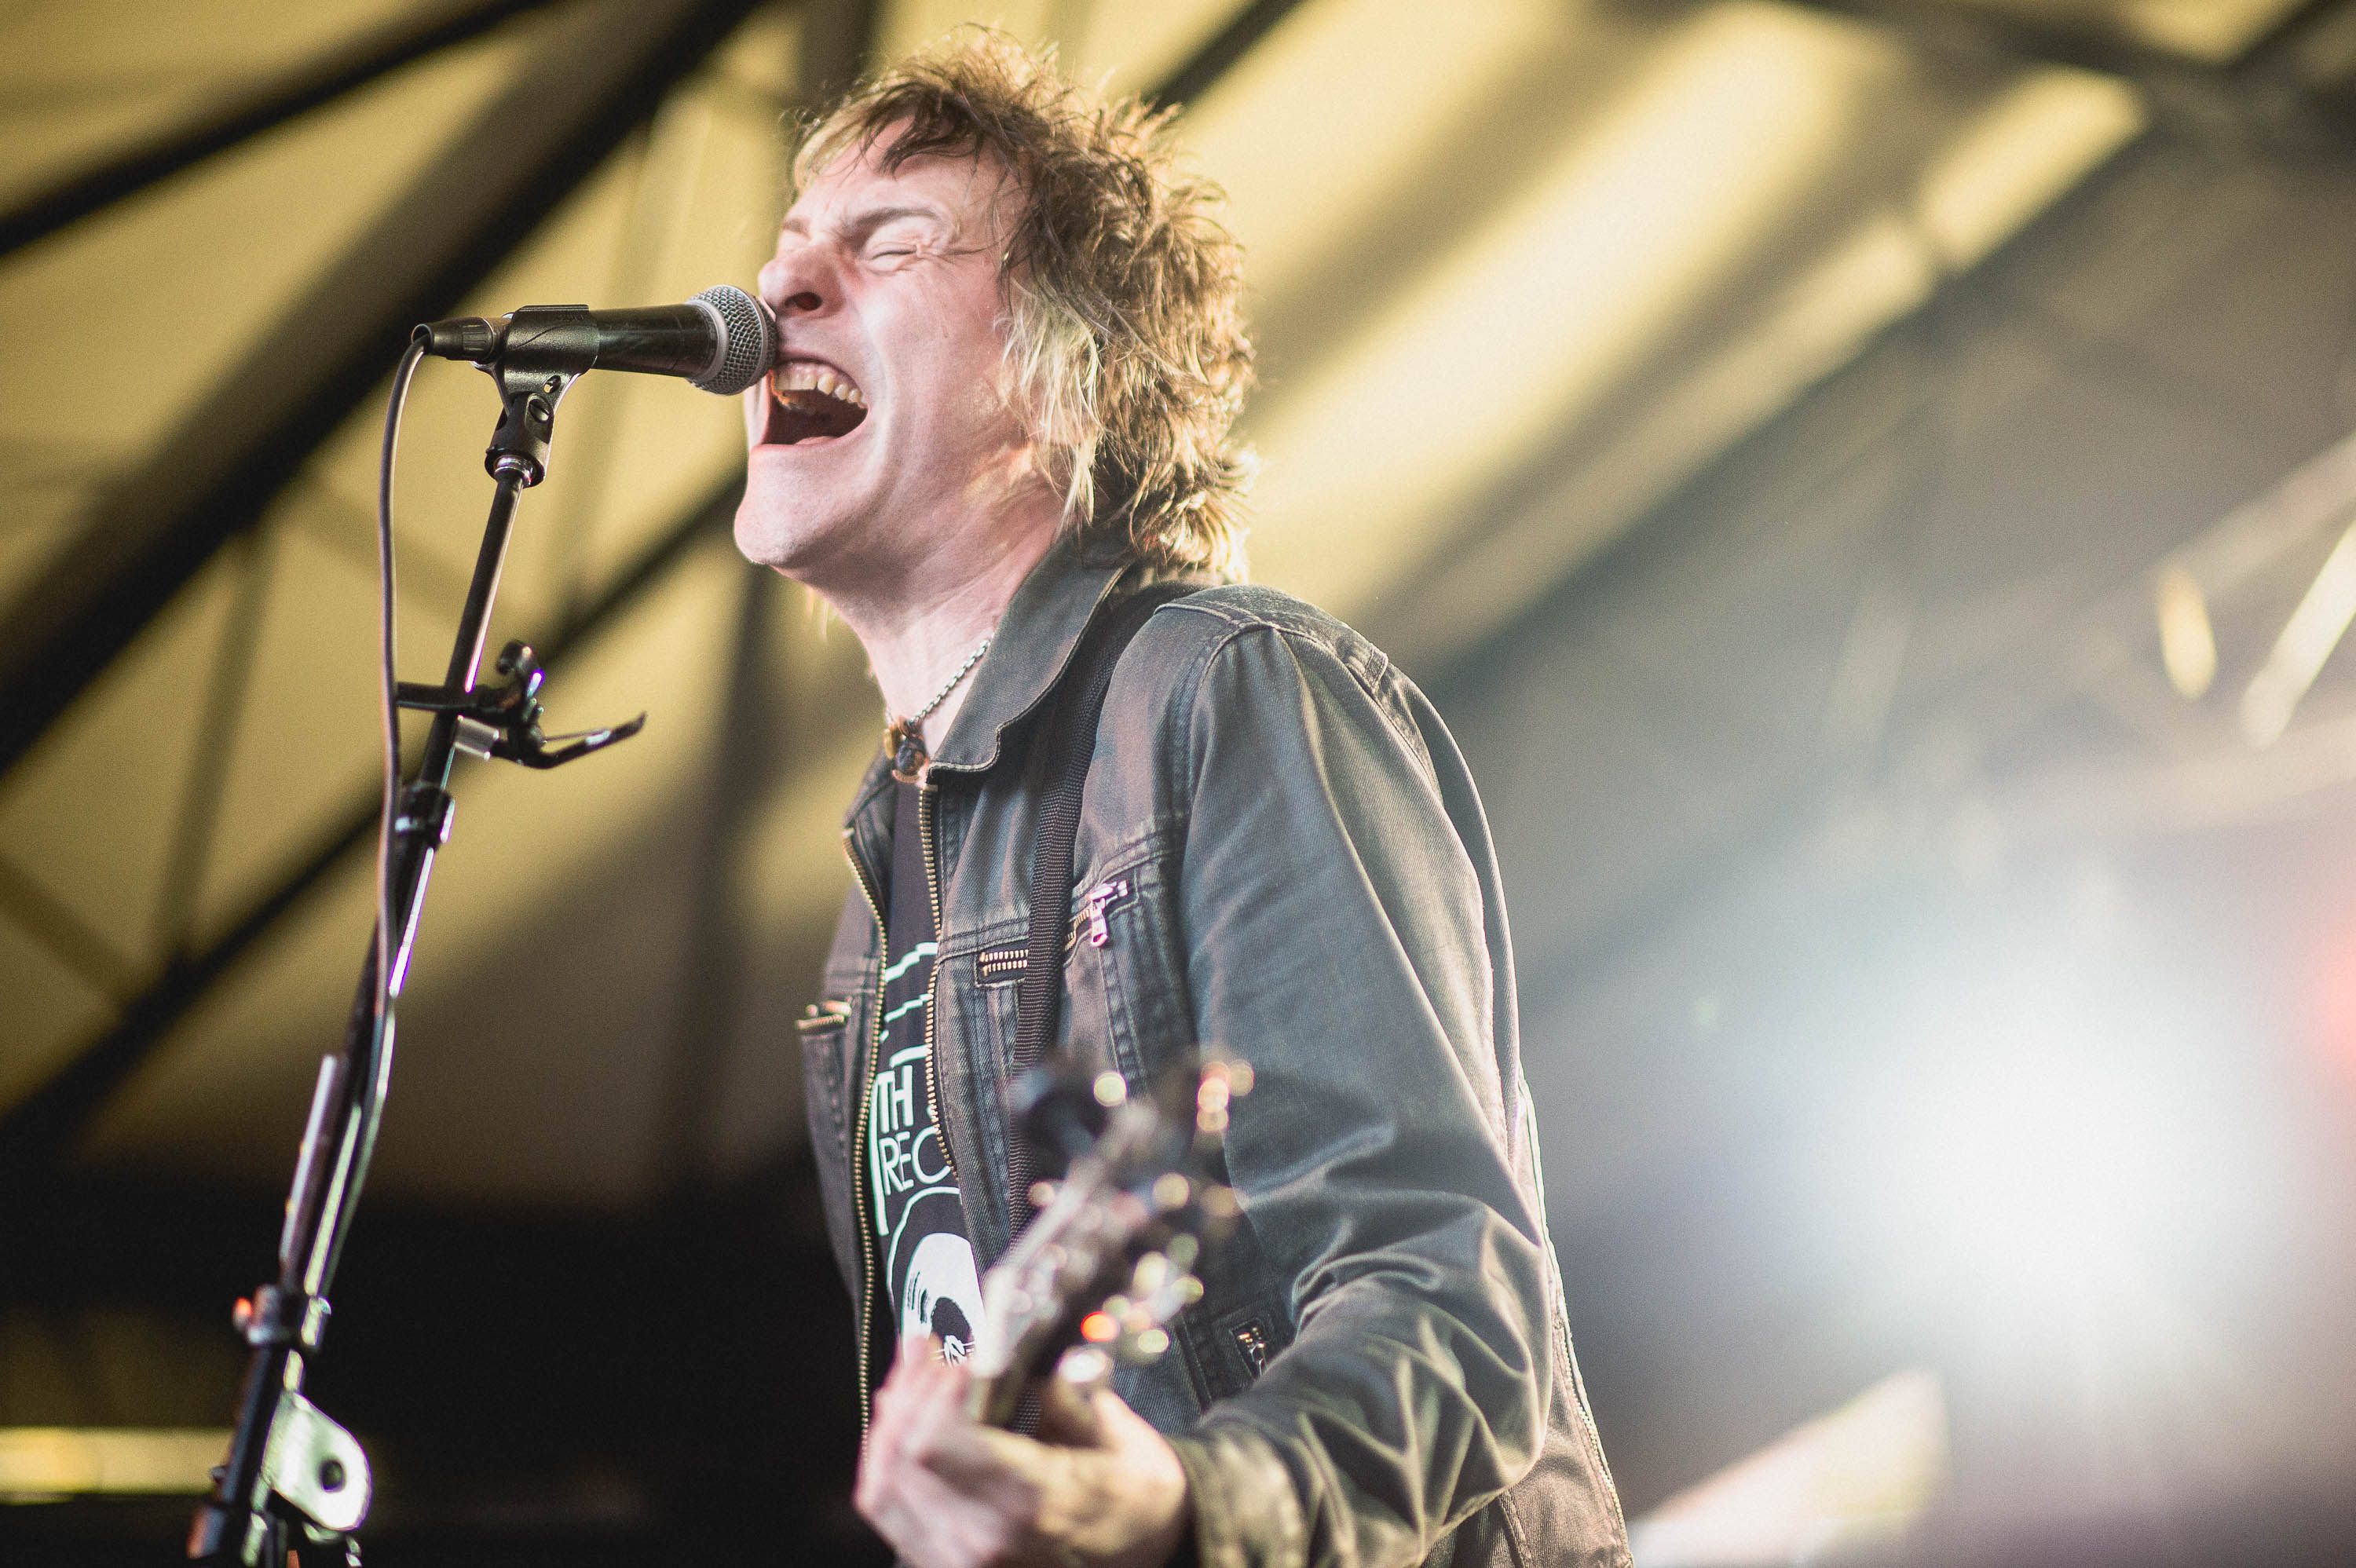 Tommy Stinson at SXSW 2017